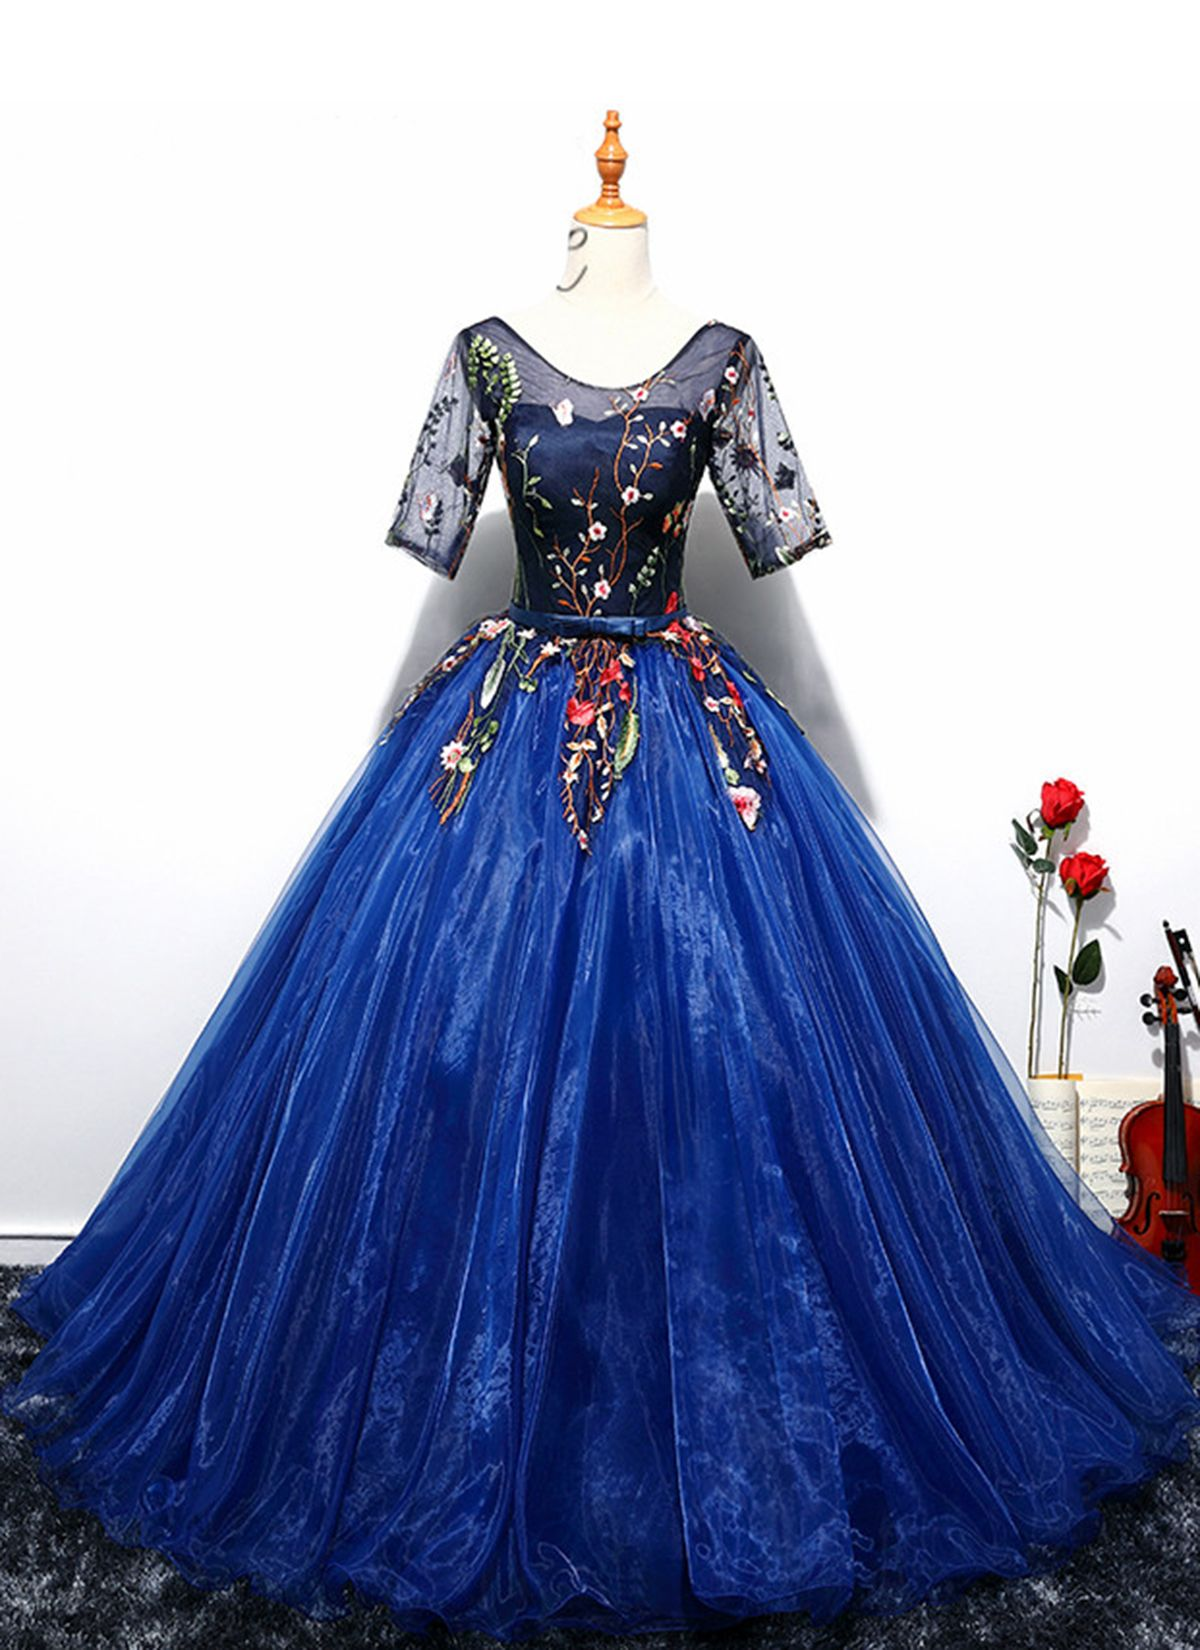 Royal blue puffy flower formal long evening dress prom gown wedding